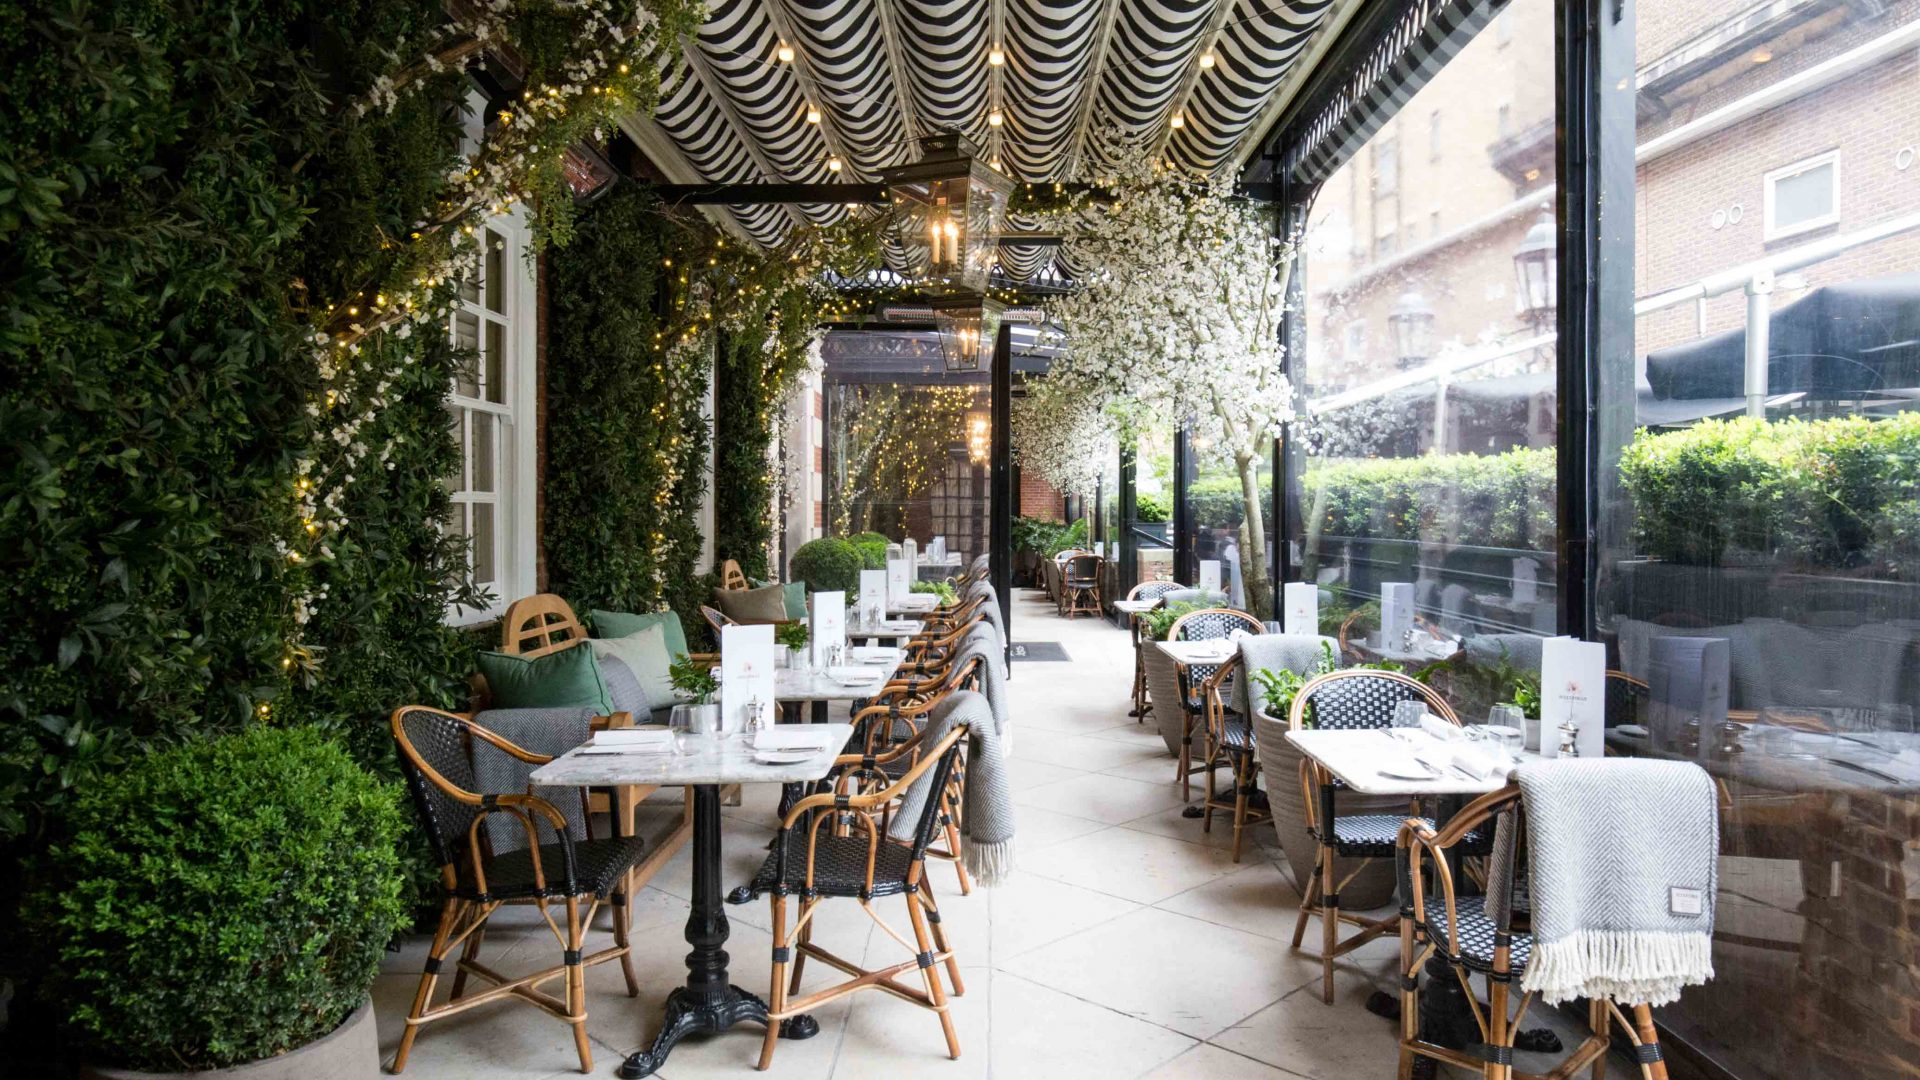 Dalloway terrace bar is an elegant poetic and for Terrace bar grill